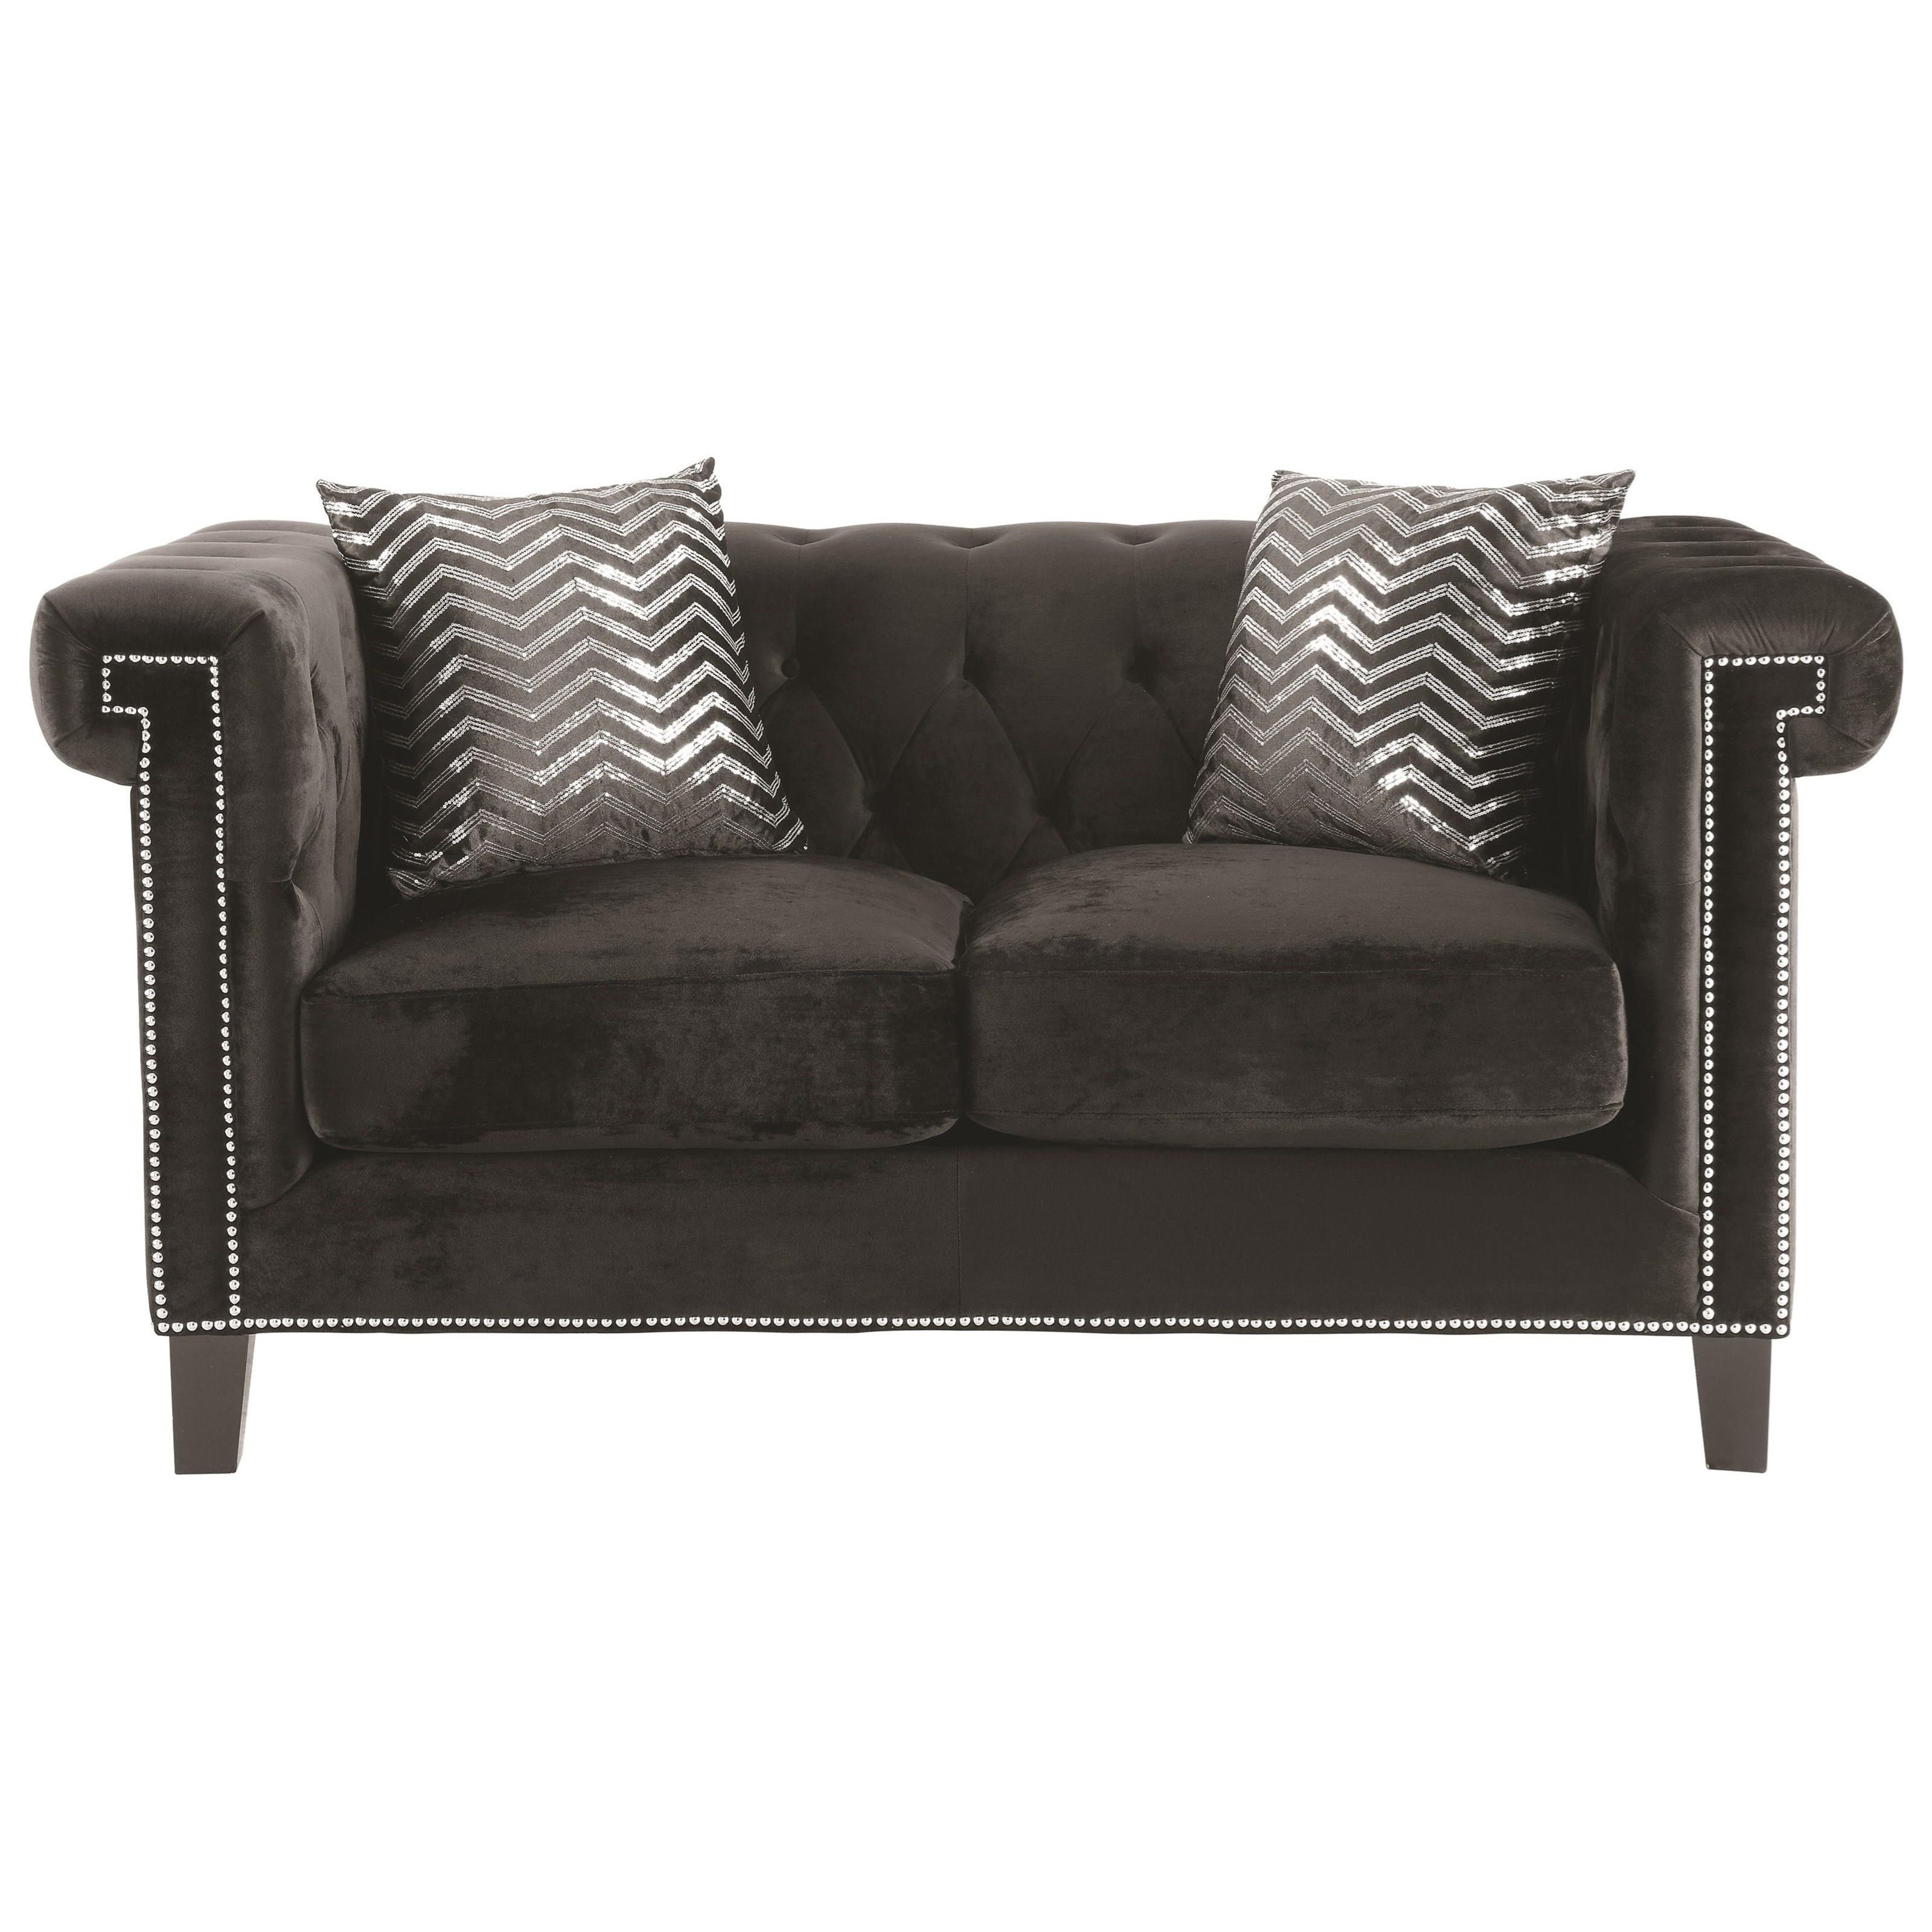 Reventlow Loveseat by Coaster at Rooms for Less